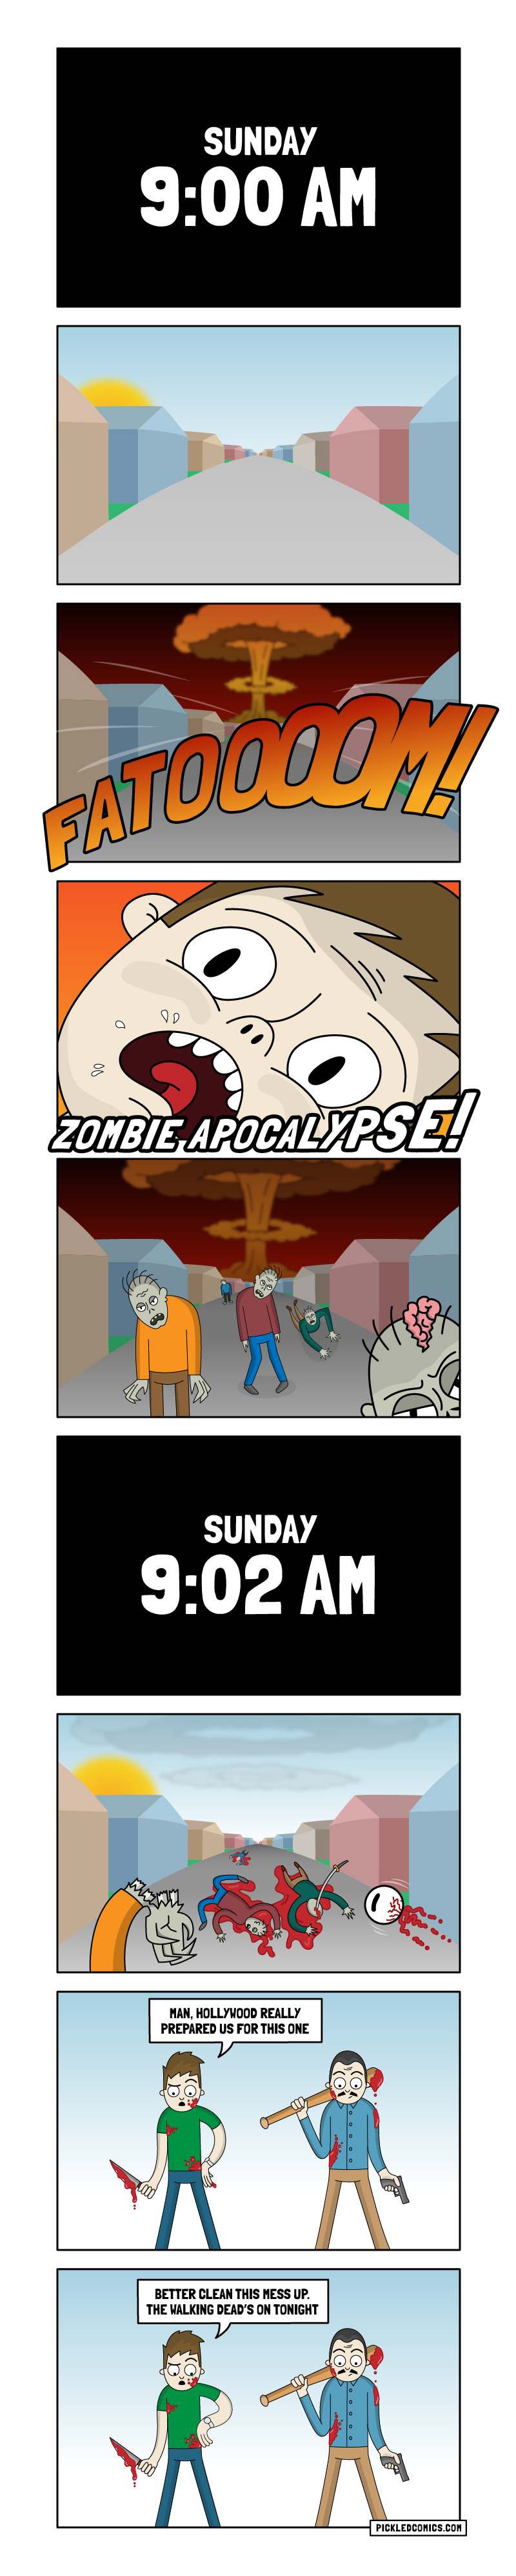 Sunday 9:00am. Fatoooom! Zombie Apocalypse! Sunday 9:02am. Man, Hollywood really prepared us for this one. Better clean this mess up. The Walking Dead's on tonight.